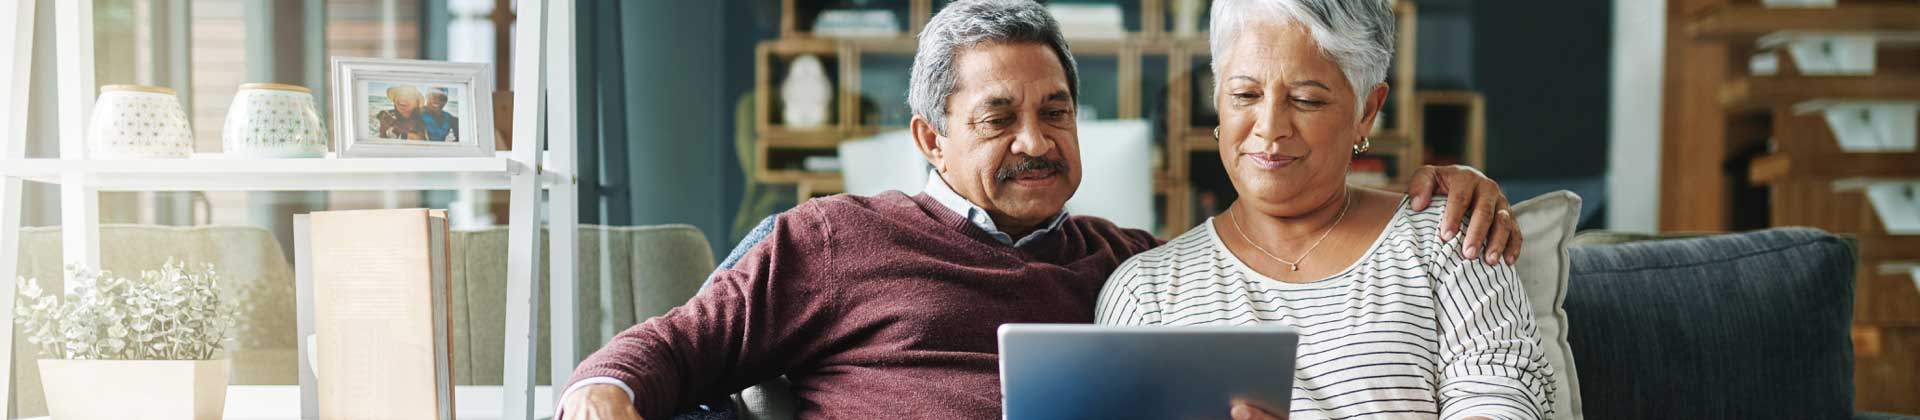 A senior couple sitting on a couch and looking at a laptop